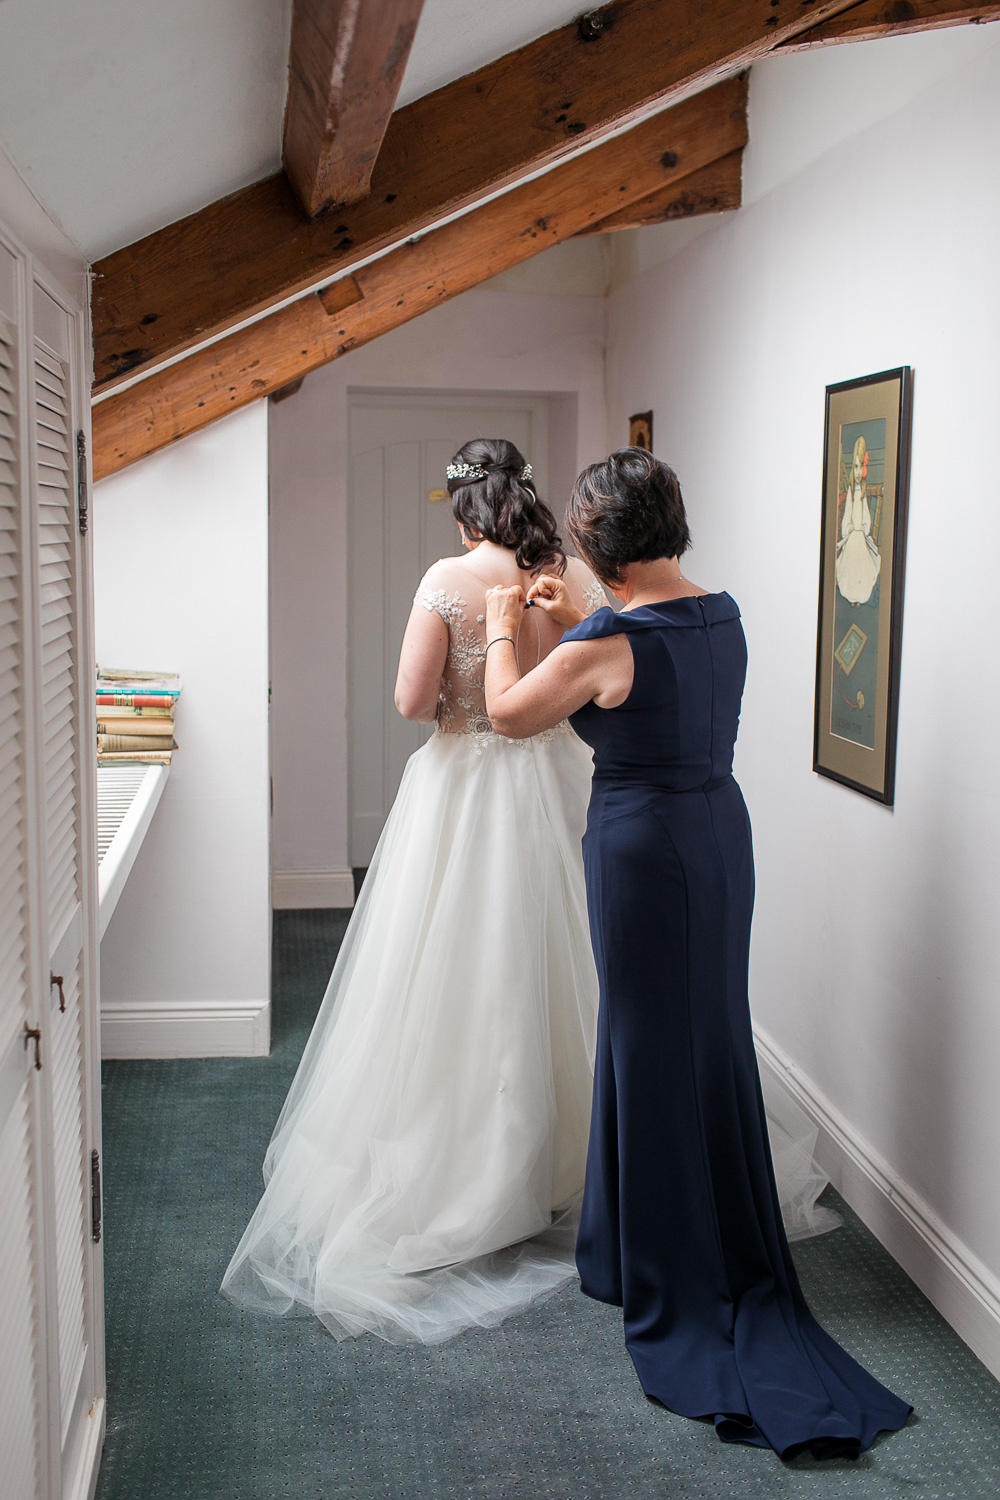 The mother of the bride helping to get into the wedding dress on the morning of the wedding day